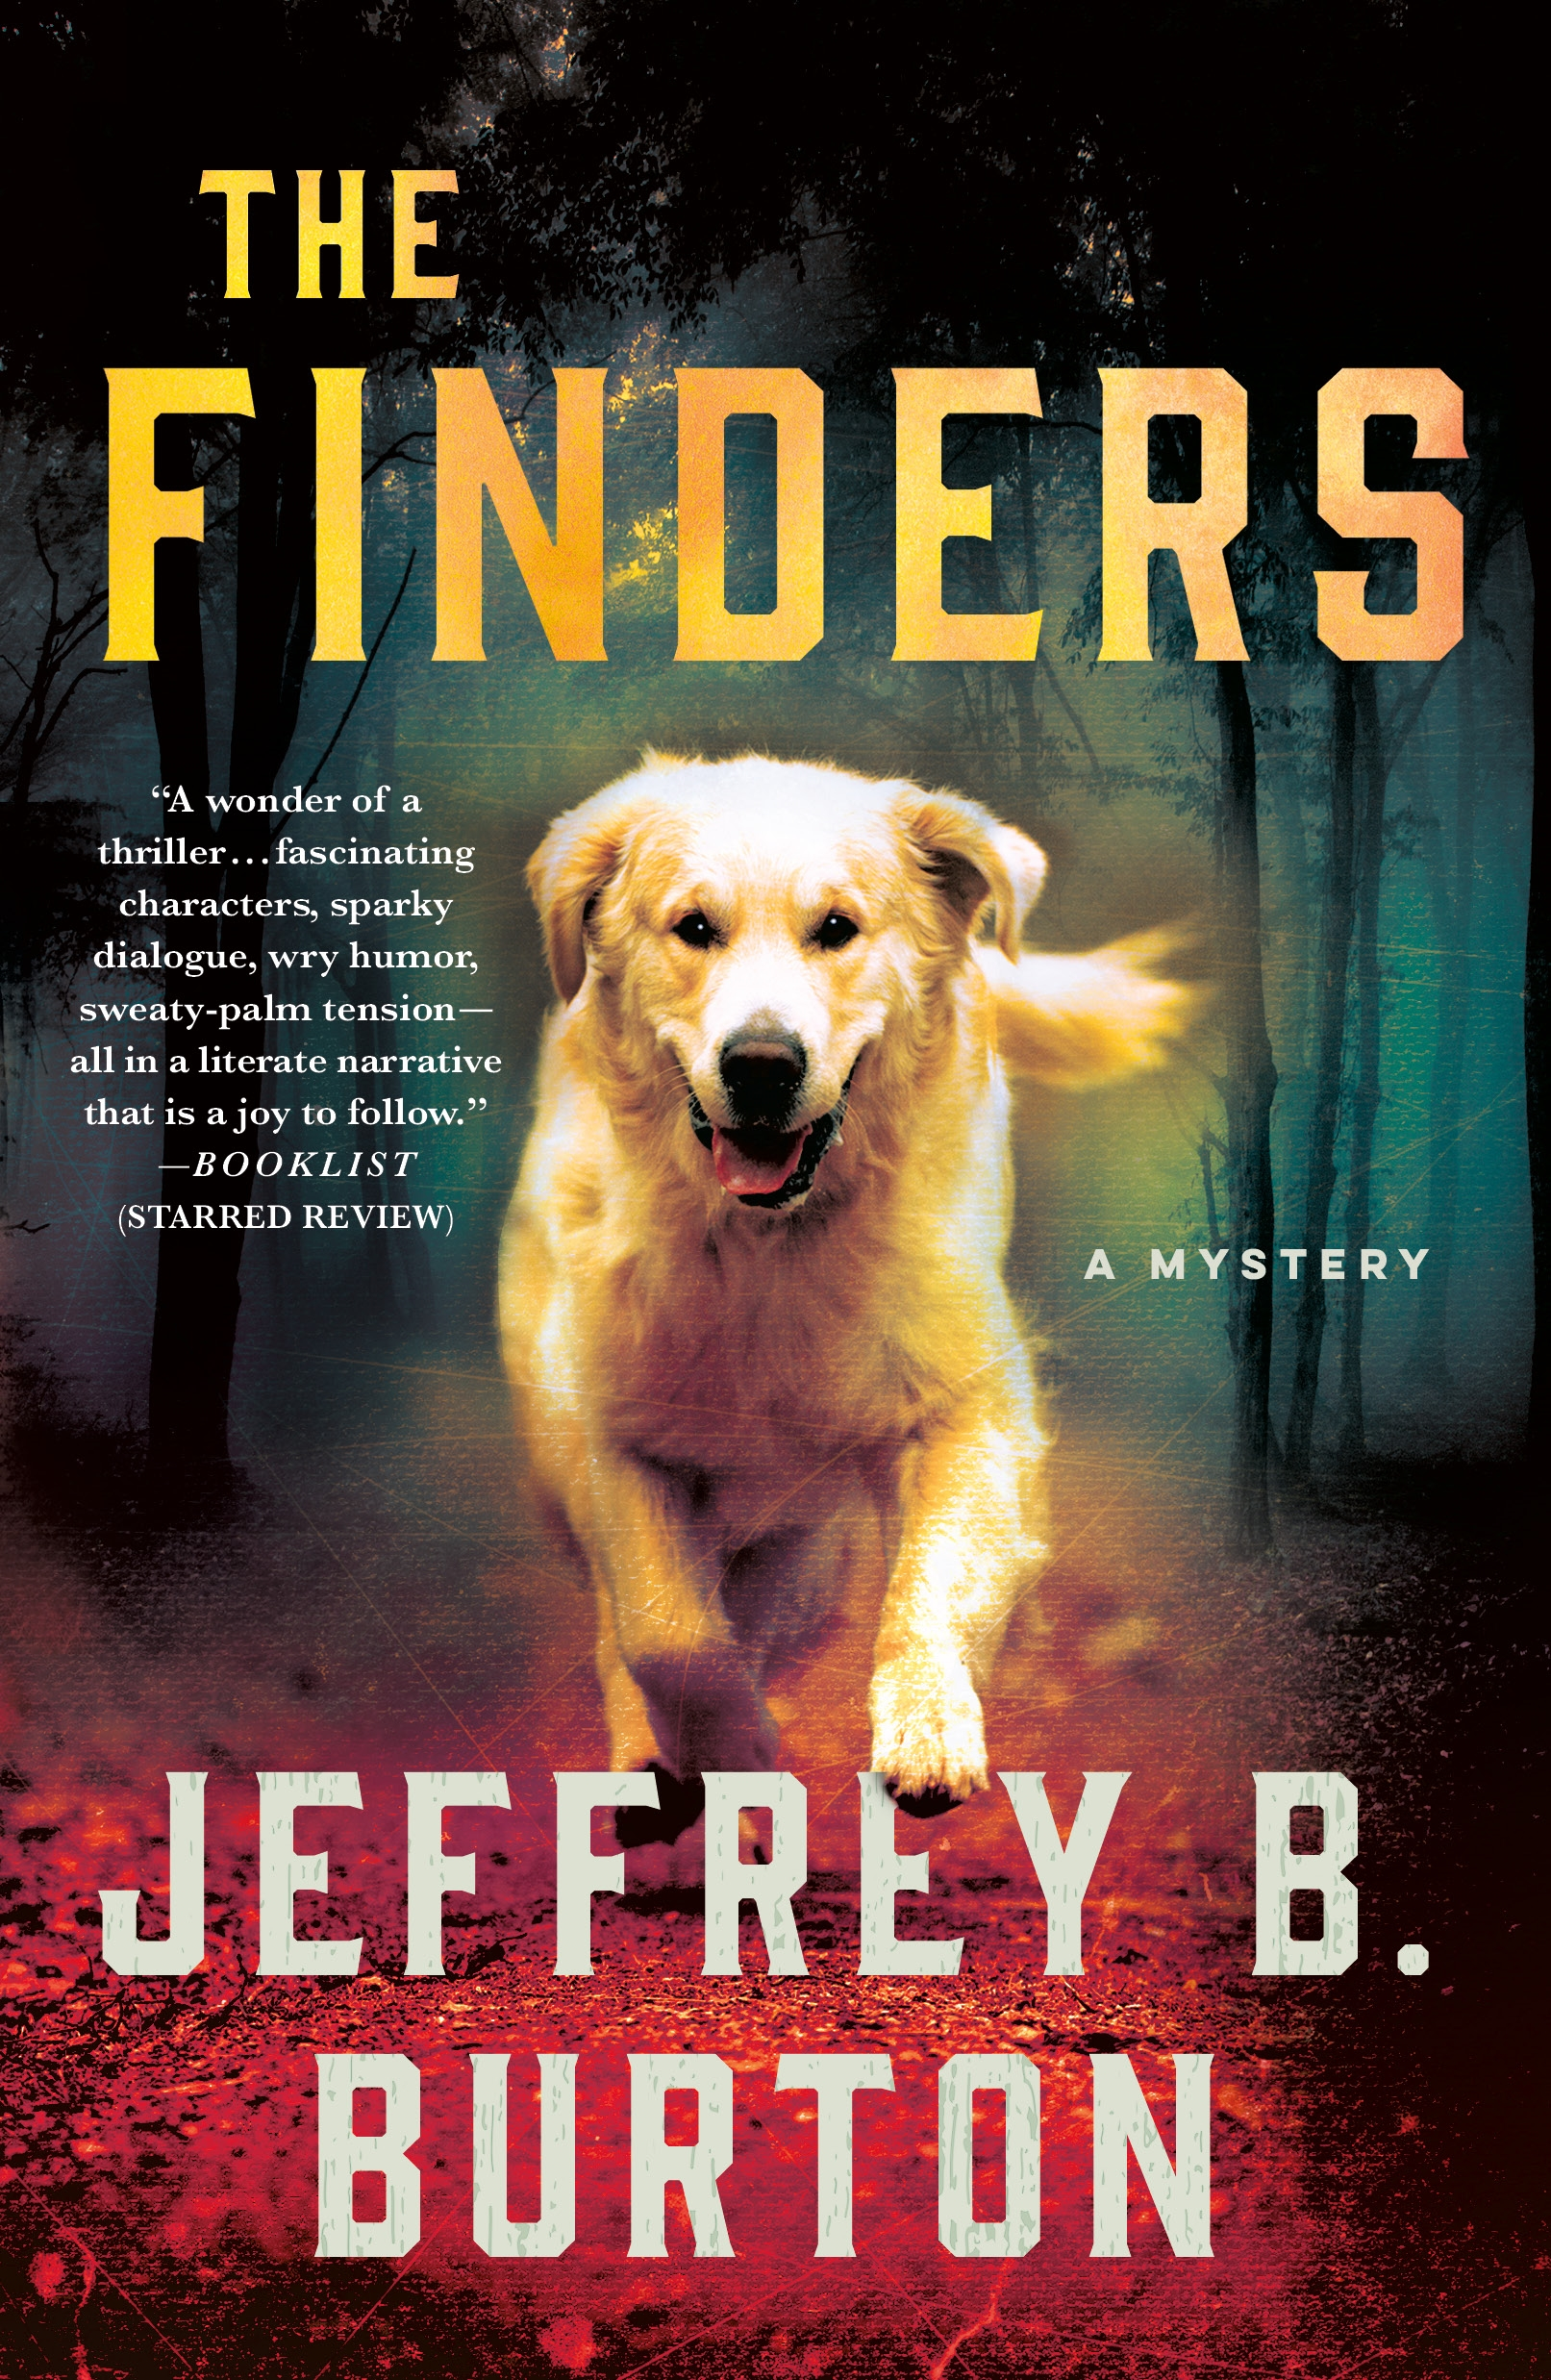 The Finders [electronic resource] : A Mystery